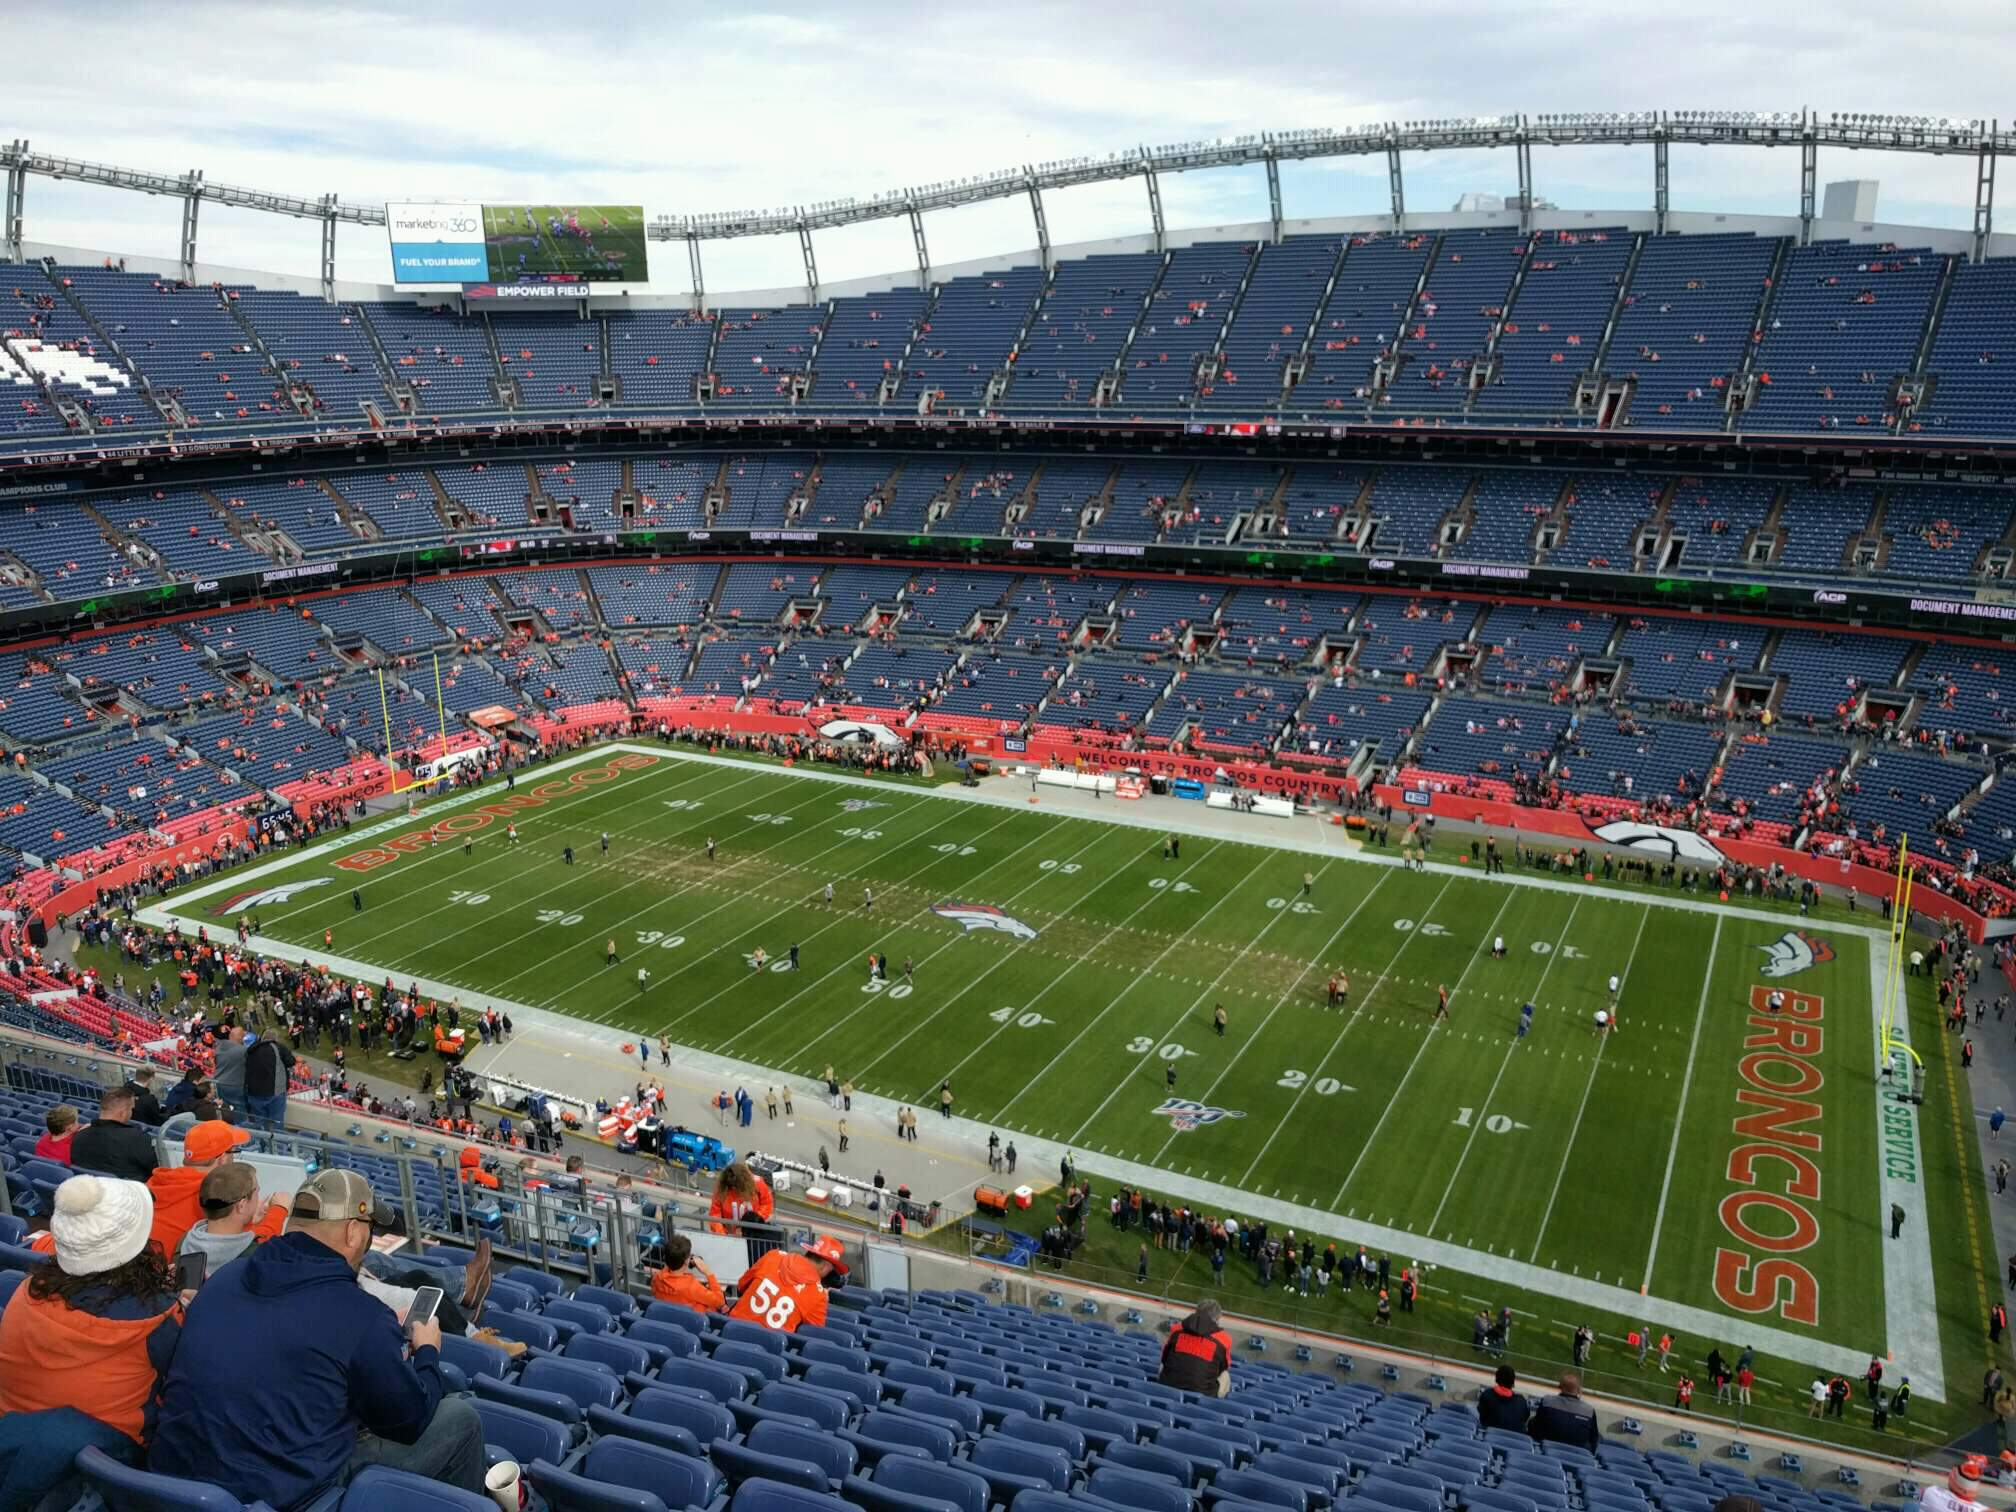 Empower Field at Mile High Stadium Section 504 Rangée 18 Siège 14